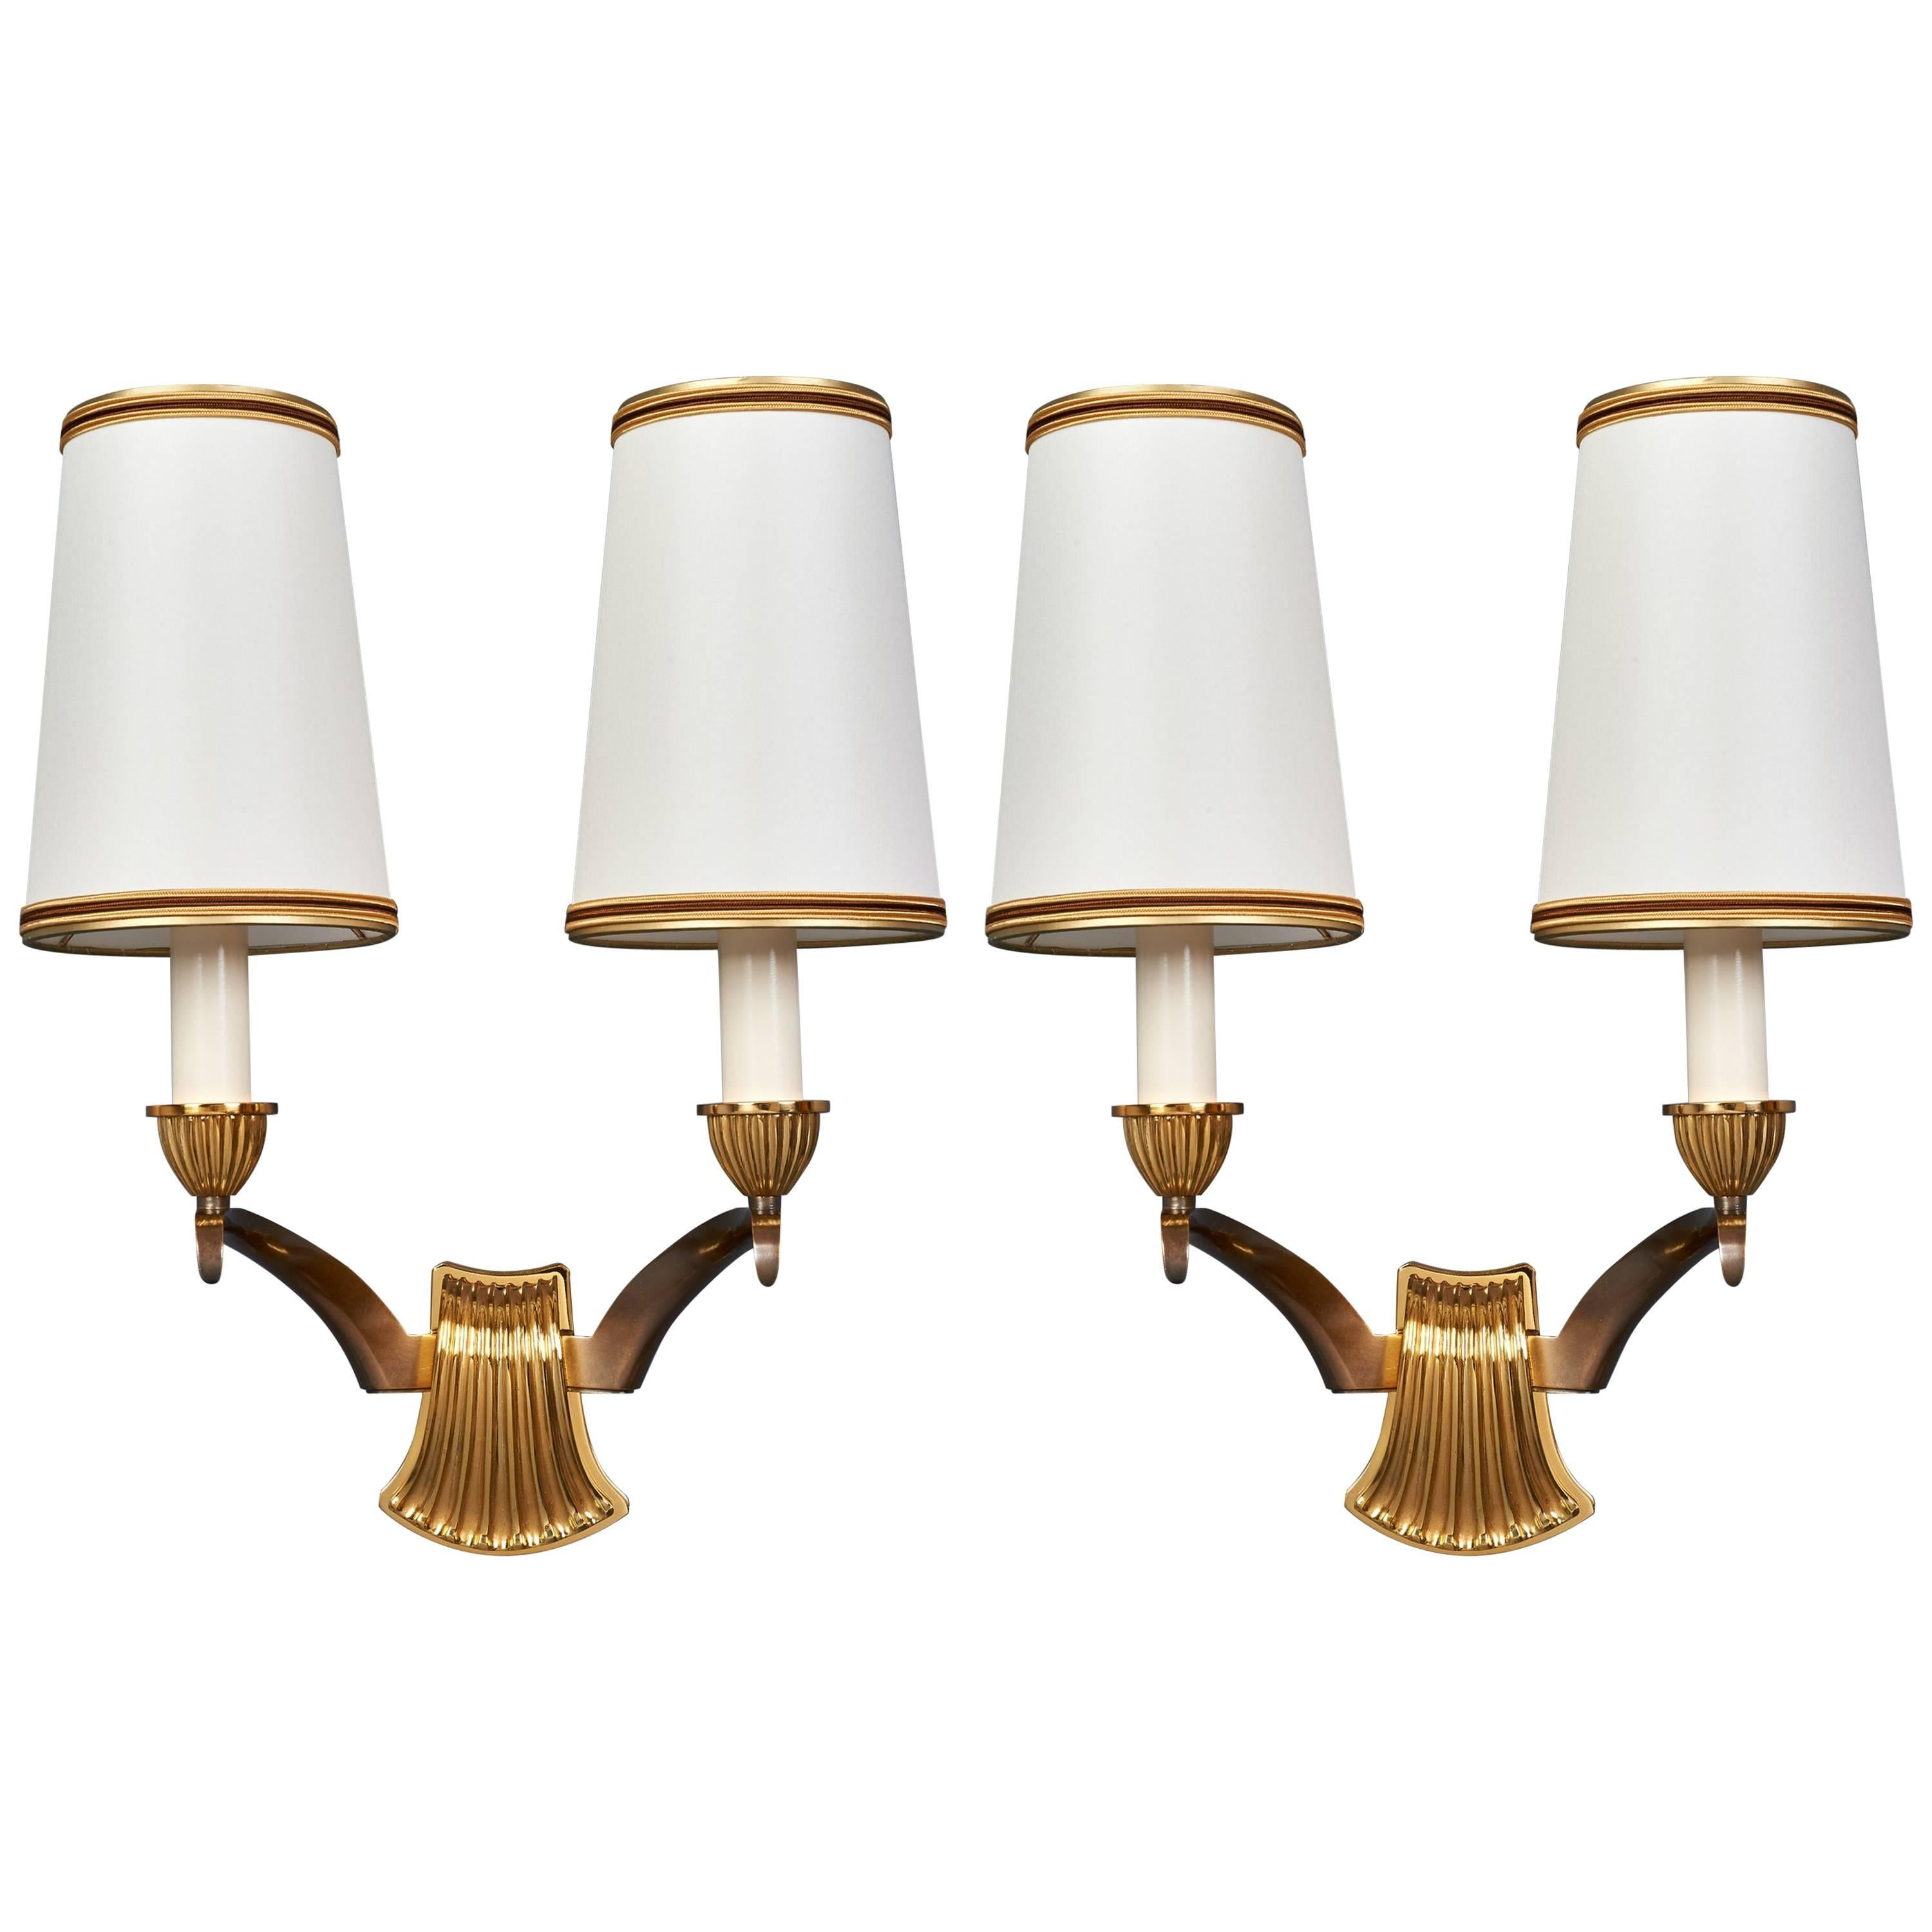 Pair of Scalloped Bronze Sconces by Genet Michon, France 1950s